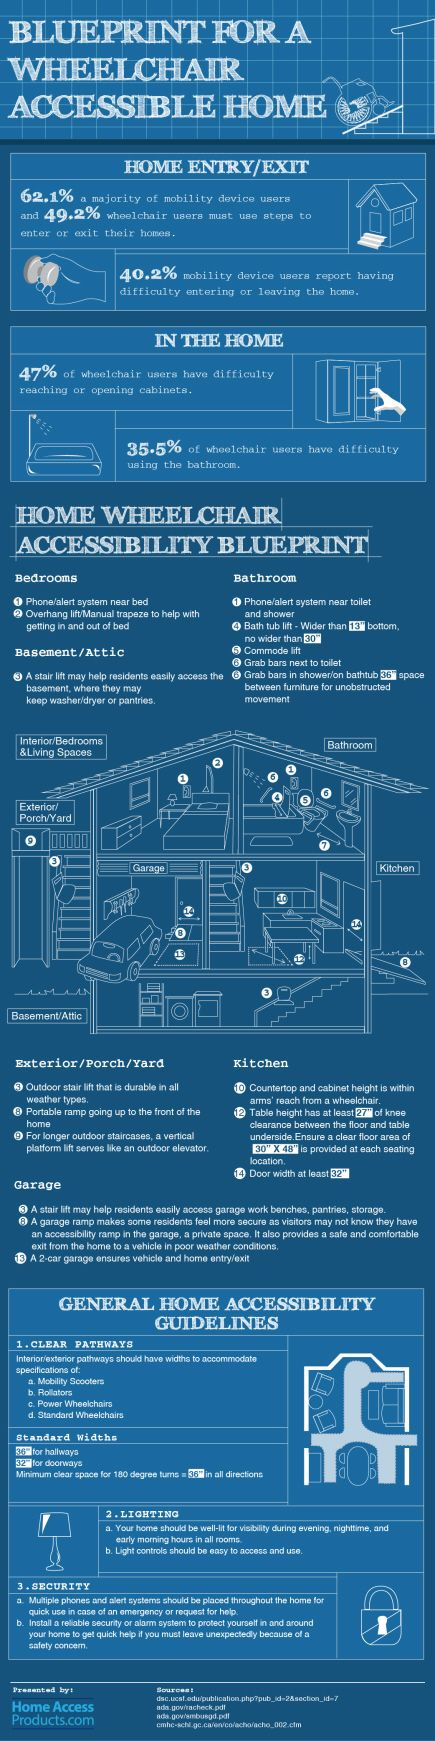 17 best images about disability assistance devices equipment on blueprint for a wheelchair accessible home infographic